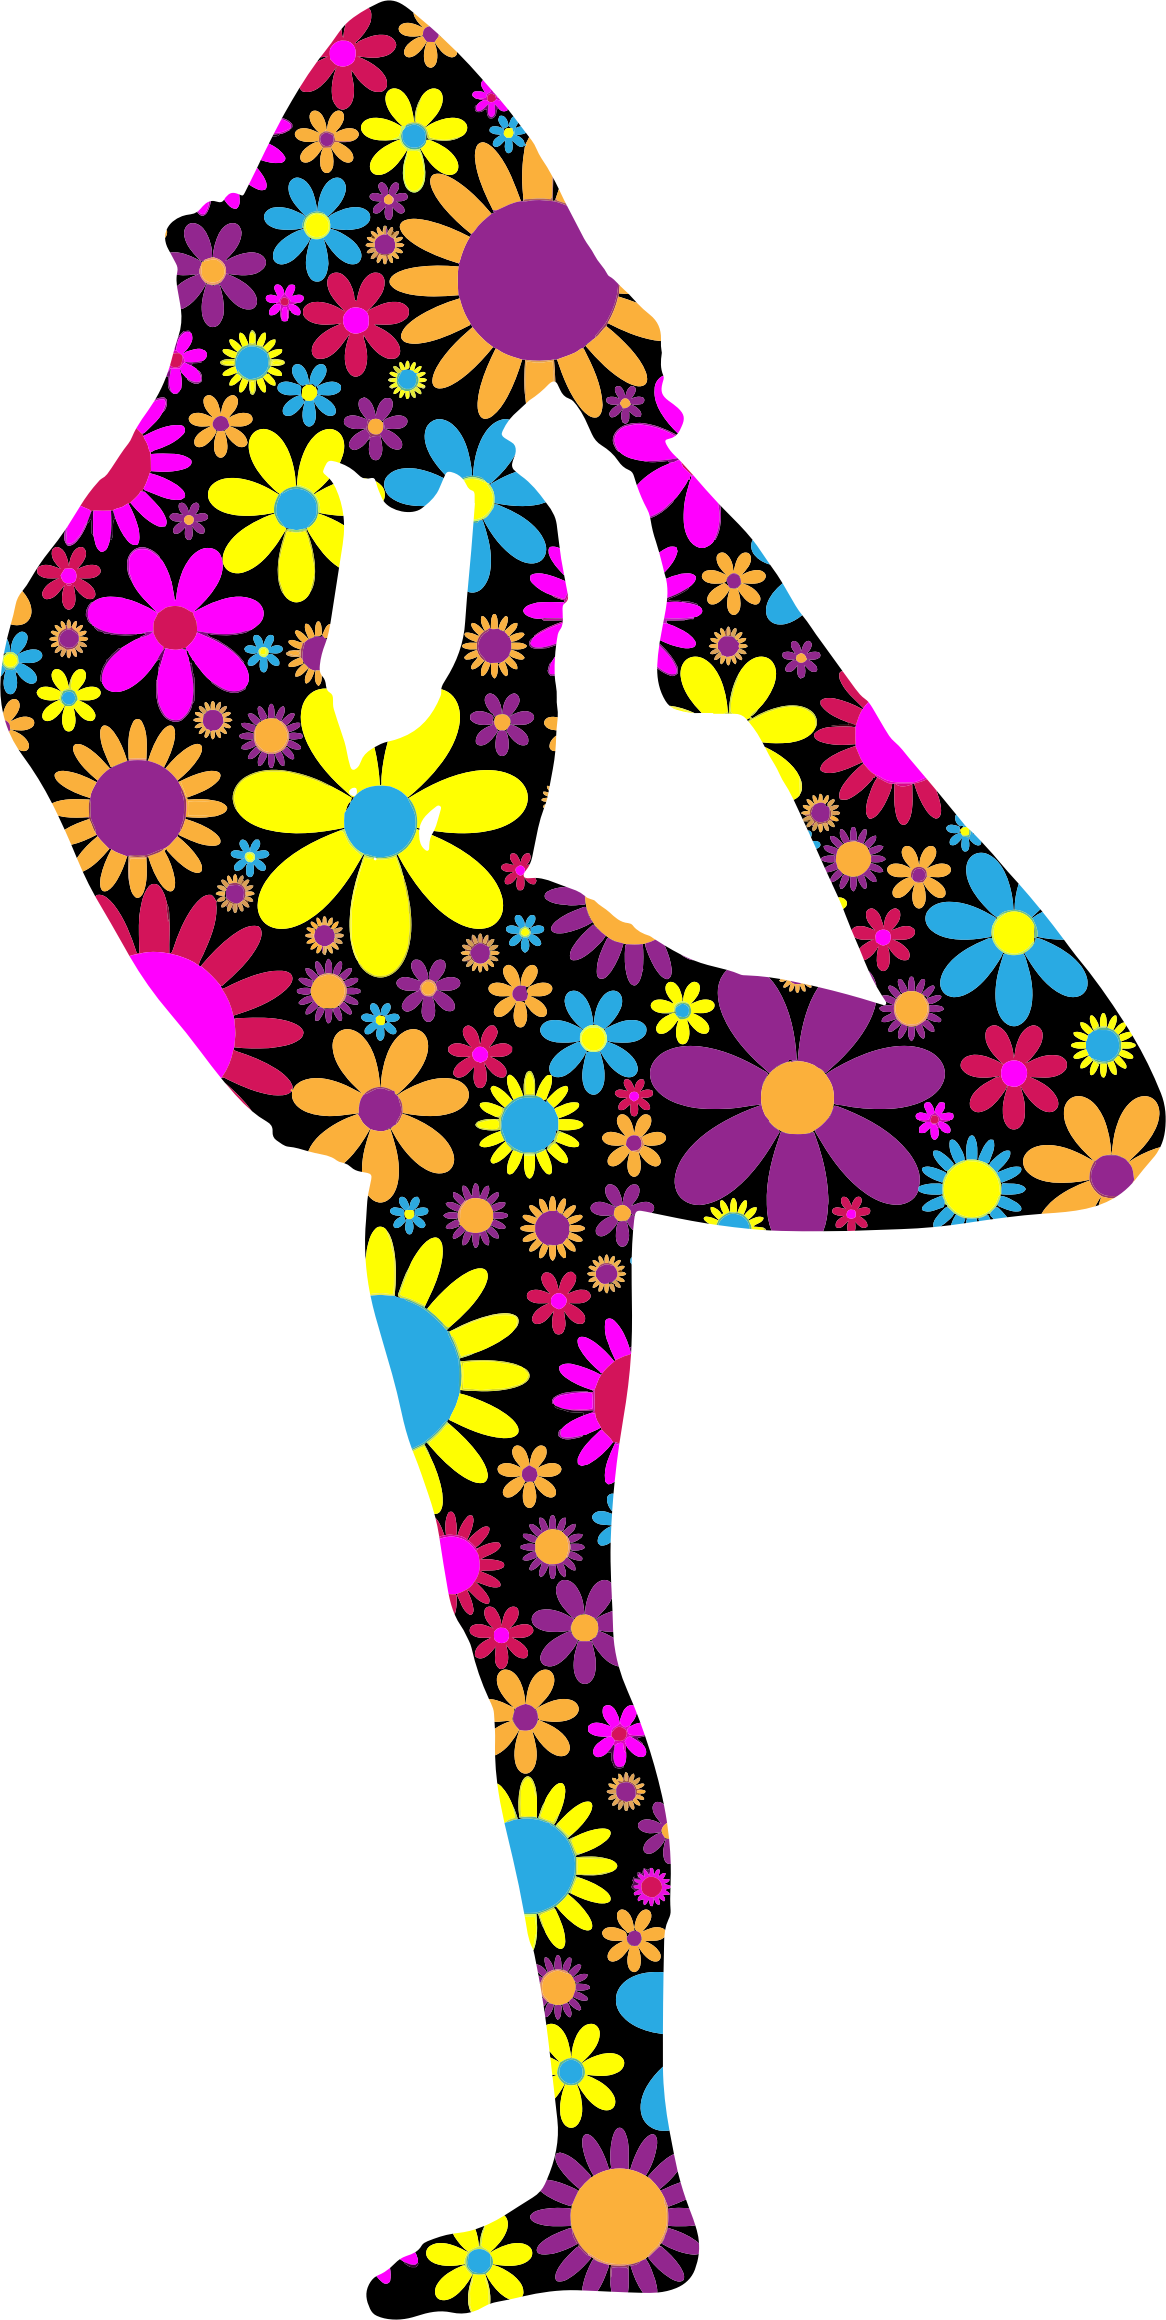 Floral Female Yoga Pose Silhouette 3 by GDJ